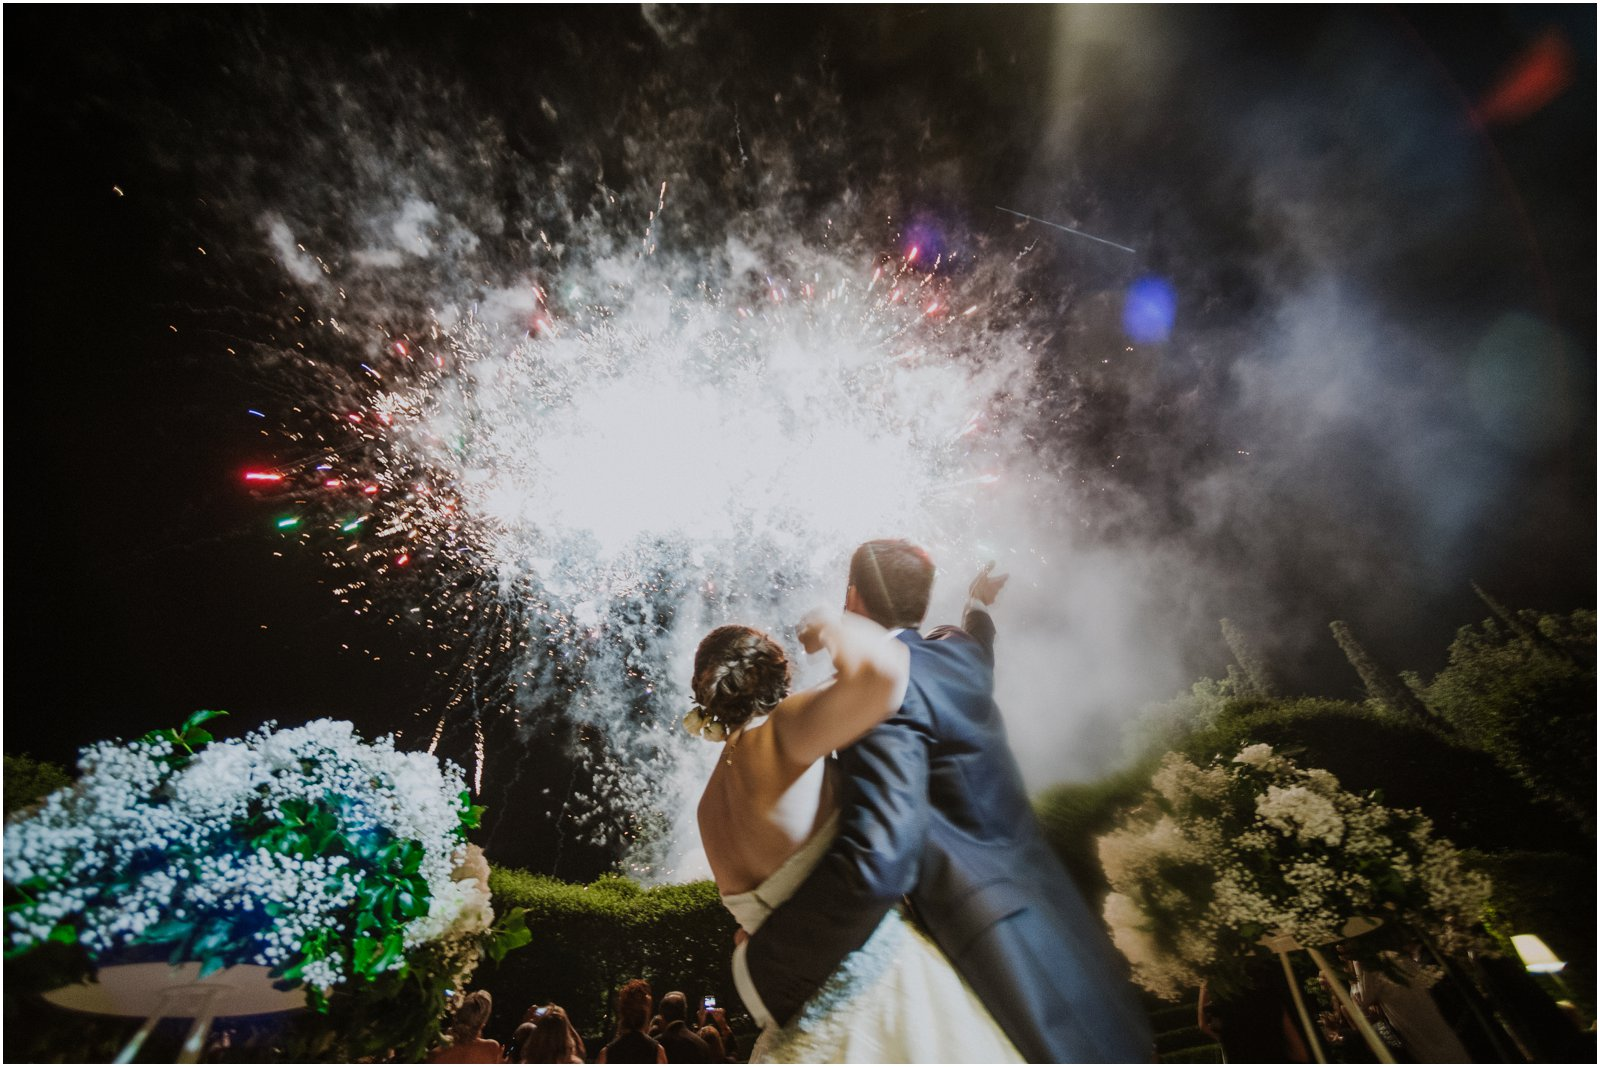 veronasposi foto e video matrimonio verona_0591